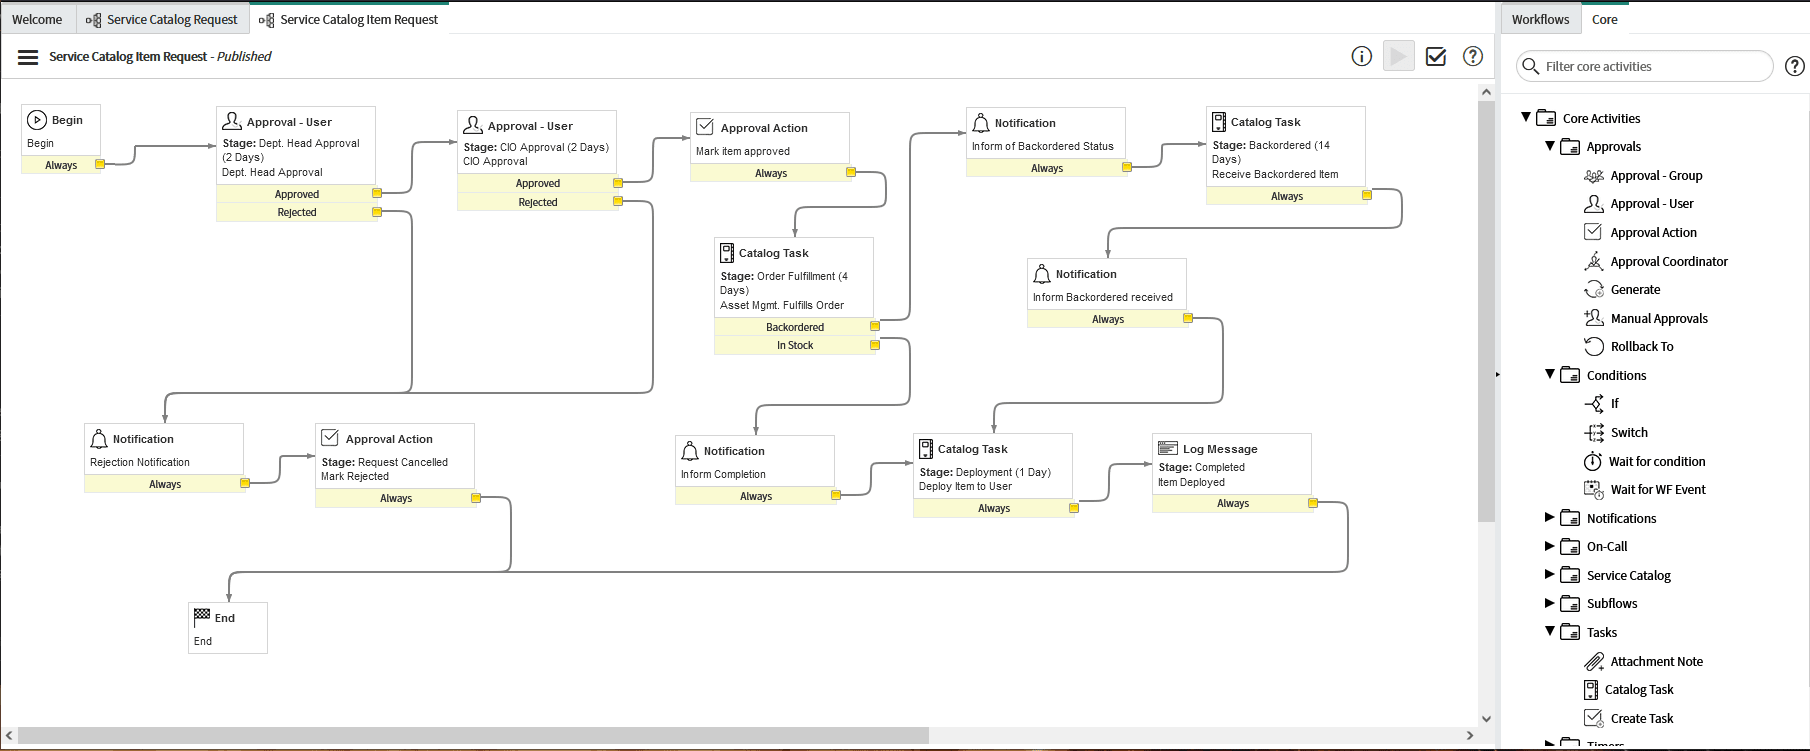 Workflow processes visualized